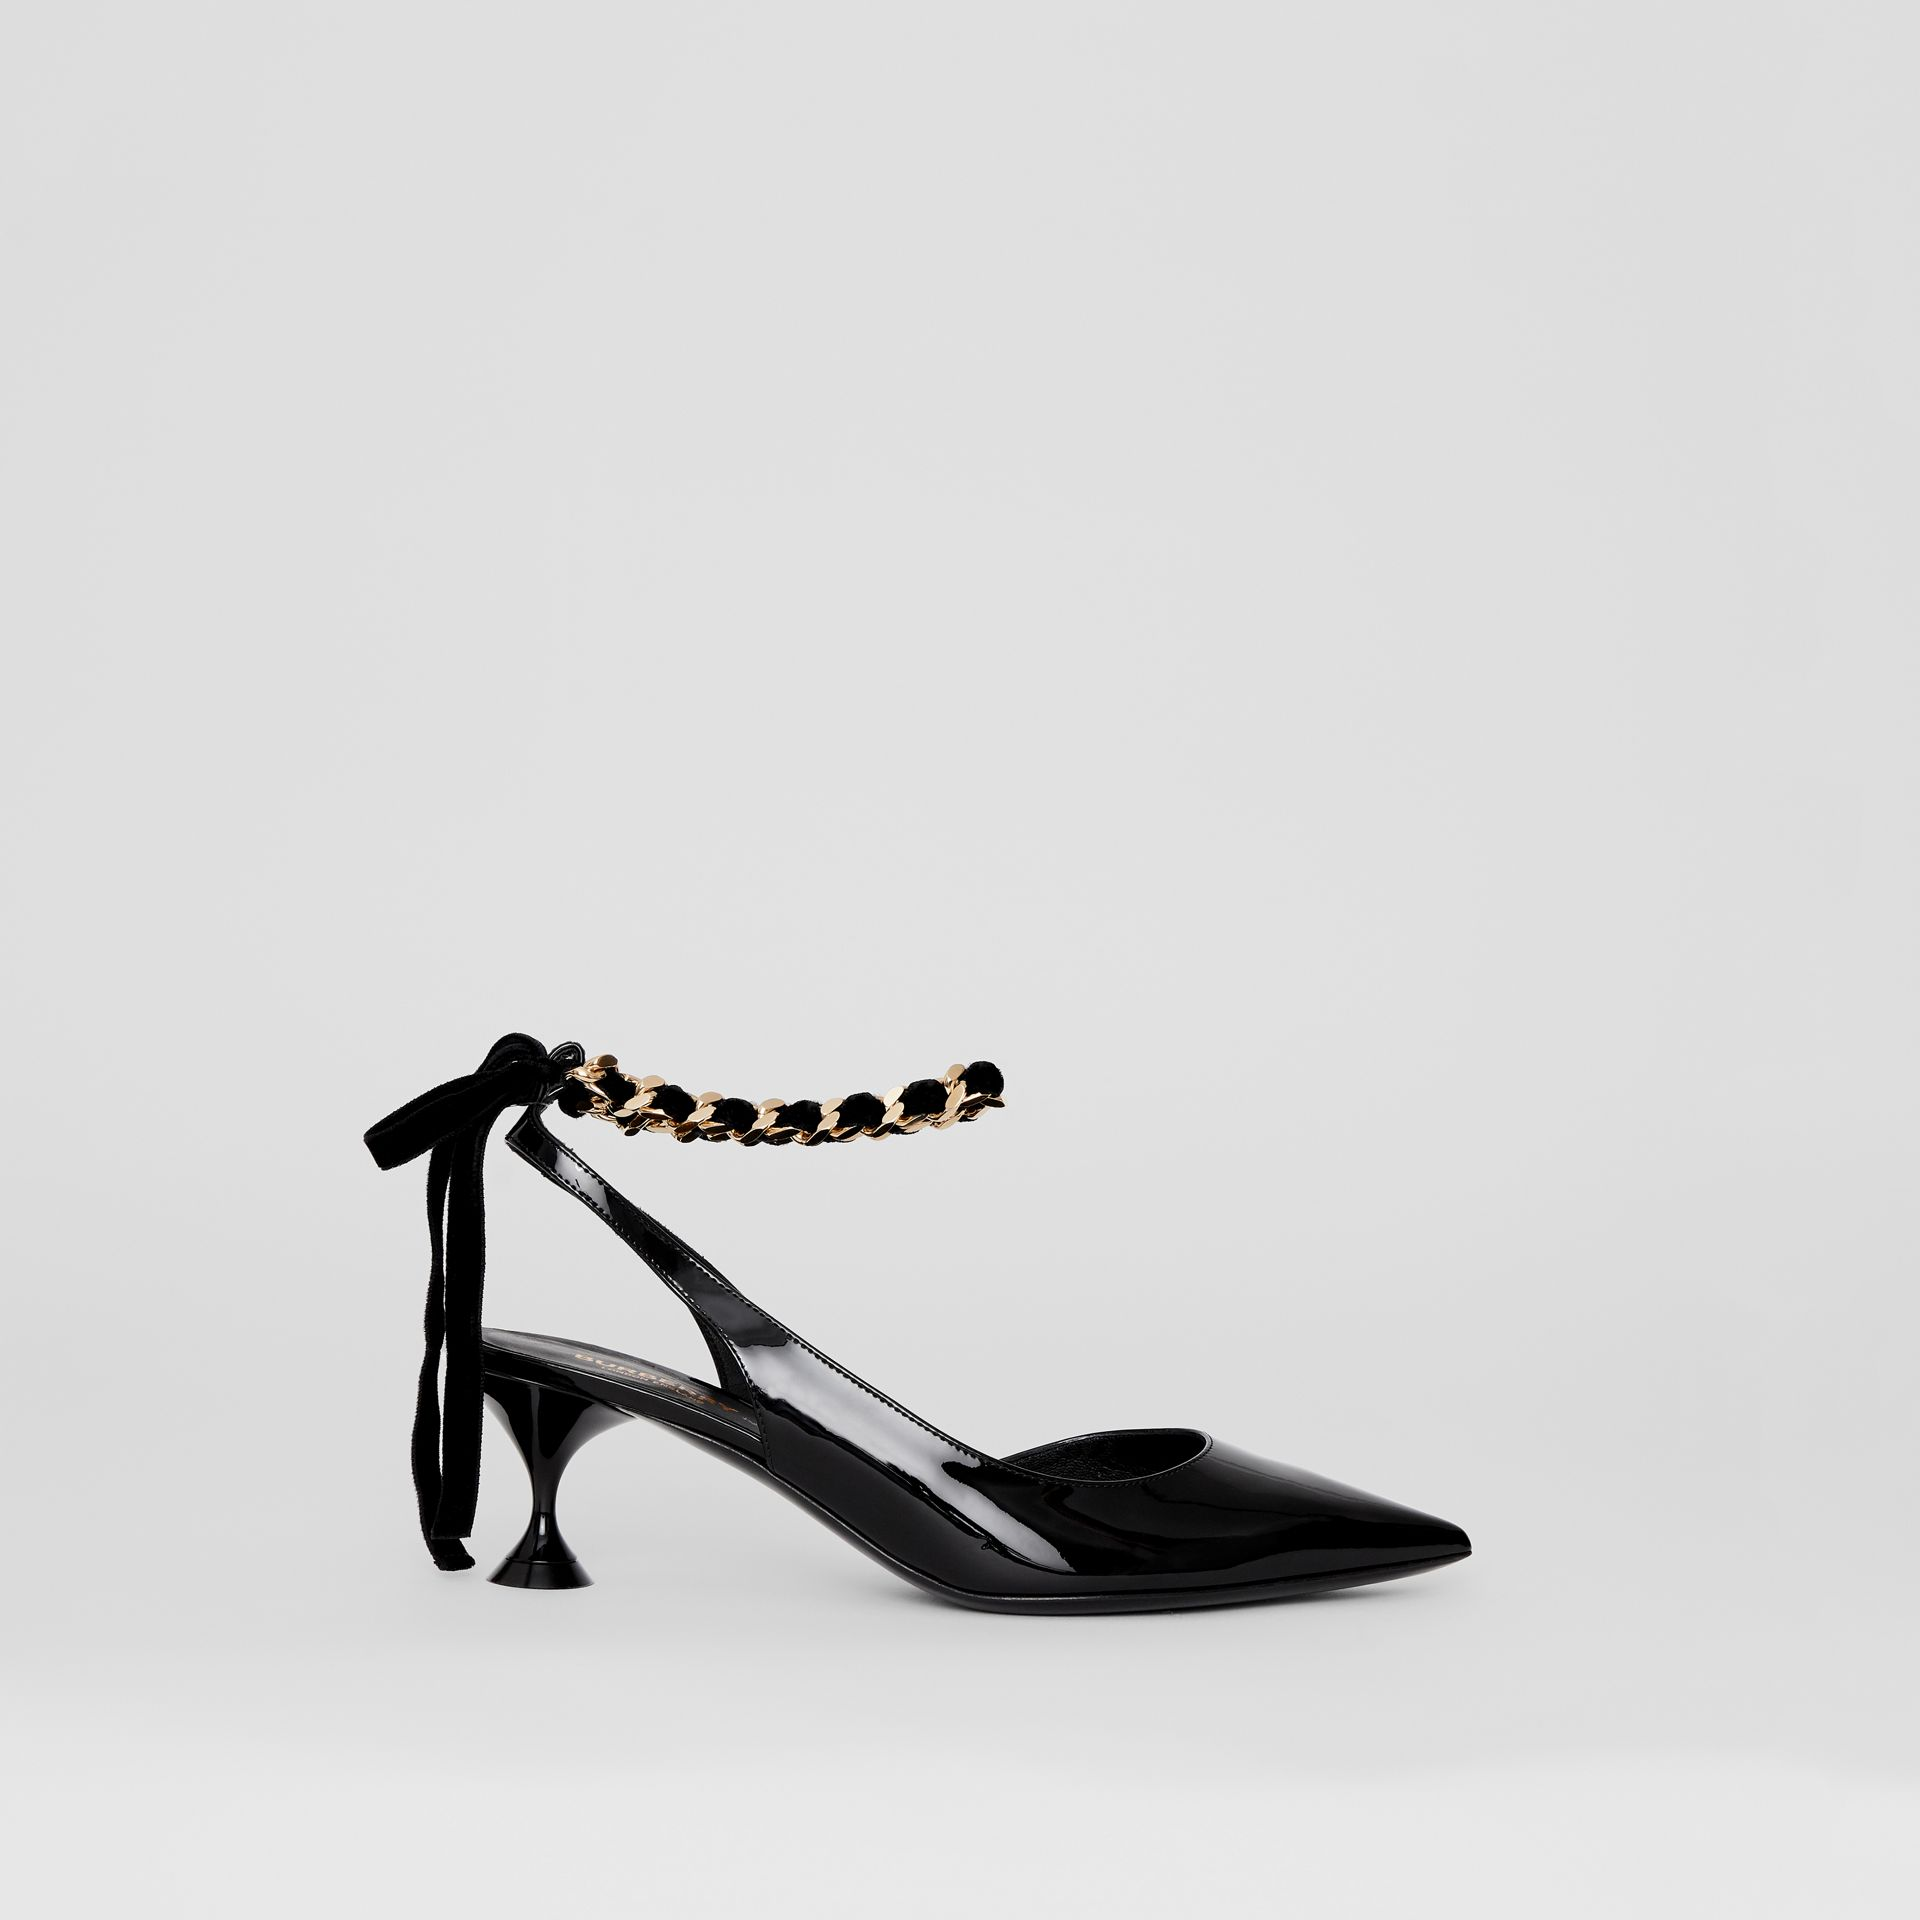 Chain Detail Leather Slingback Pumps in Black - Women | Burberry Canada - gallery image 5